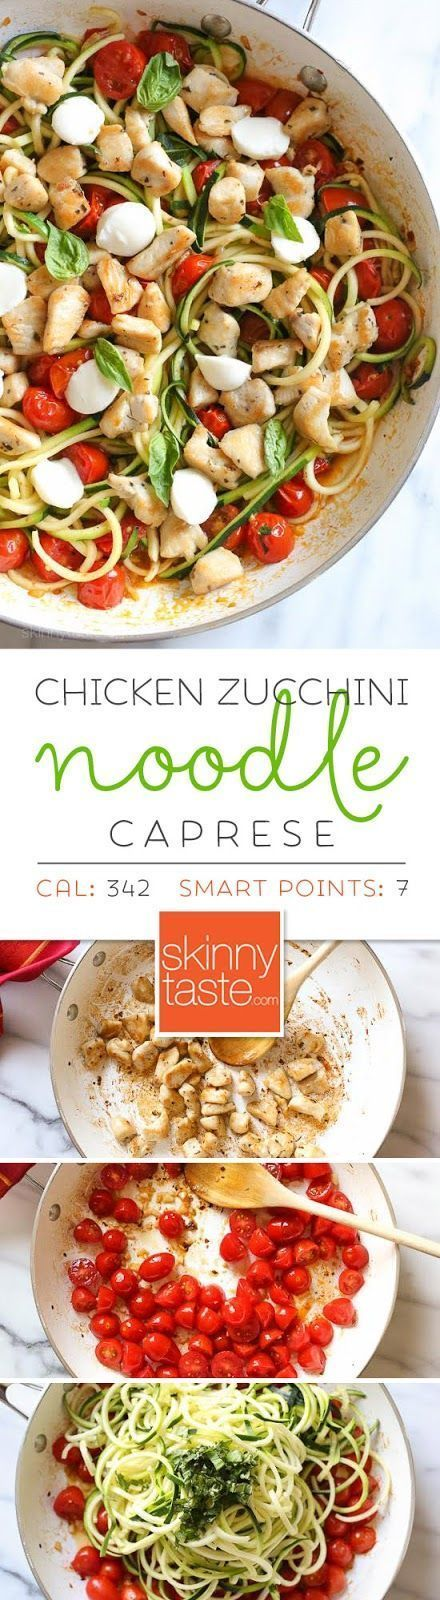 Chicken and Zucchini Noodle Caprese –21 Day Fix container breakdown per serving: 1 red, 1.5 tsp, 1/2 blue, 2 1/4 green